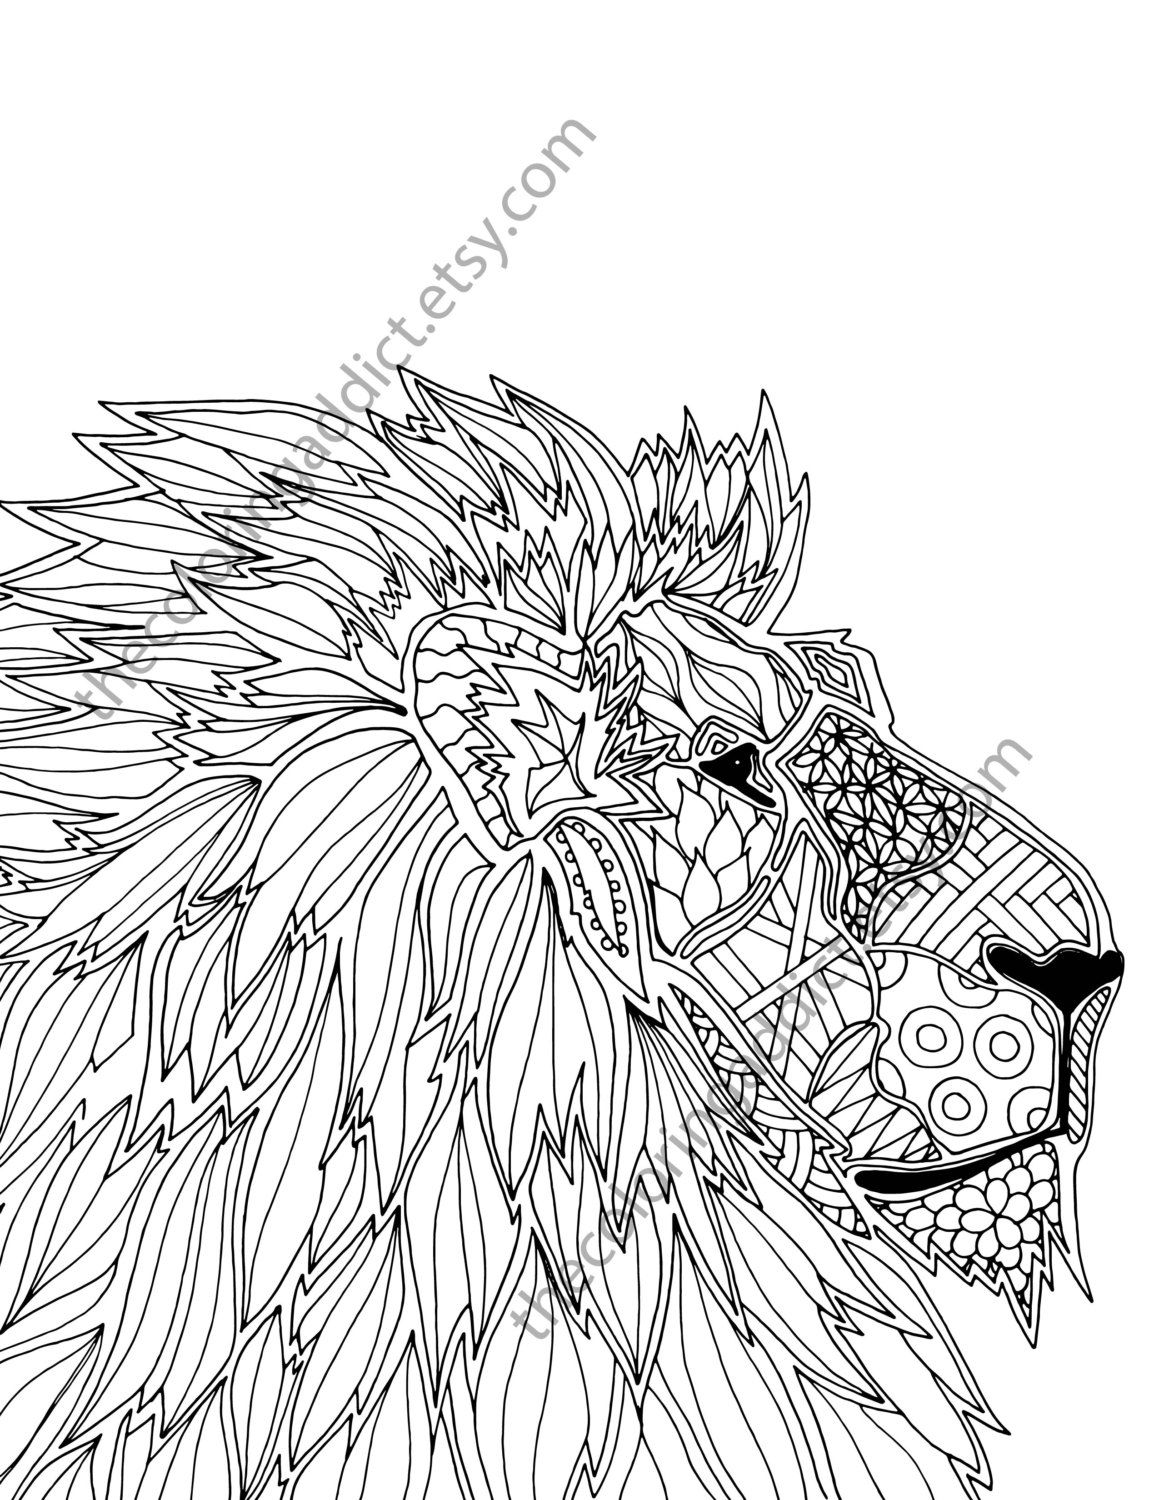 Animal Coloring Page Adult Coloring Page By Thecoloringaddict